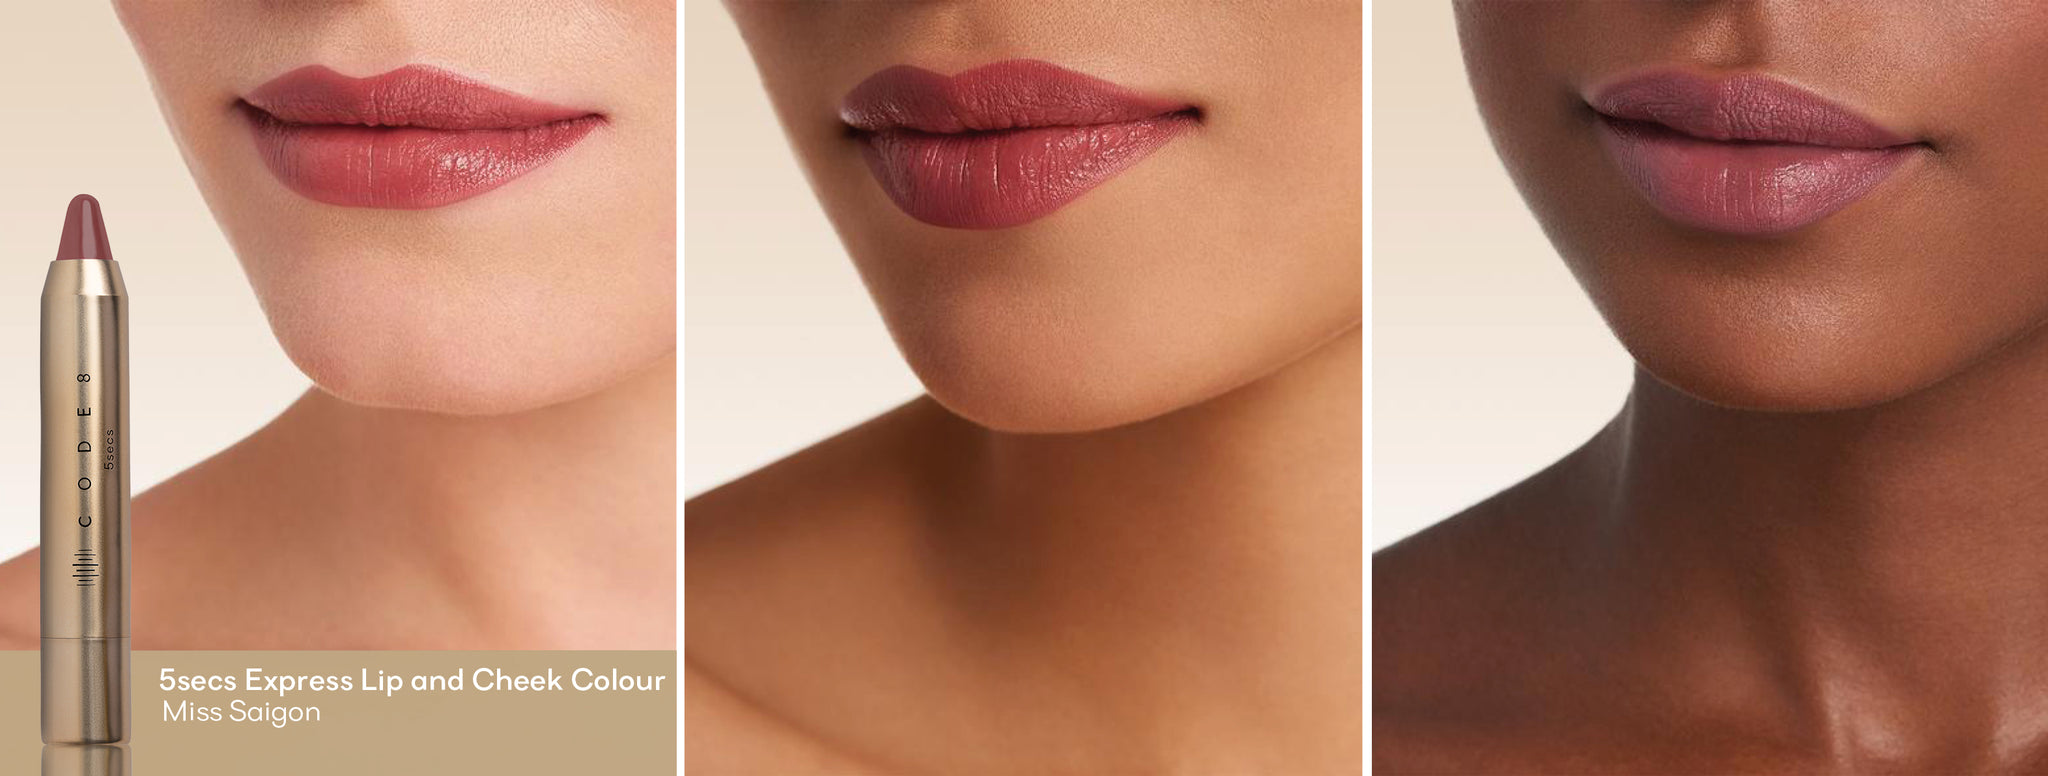 ode8's 5secs Express Lip and Cheek Colour -The Perfect Lip Colour for People With Green Eyes